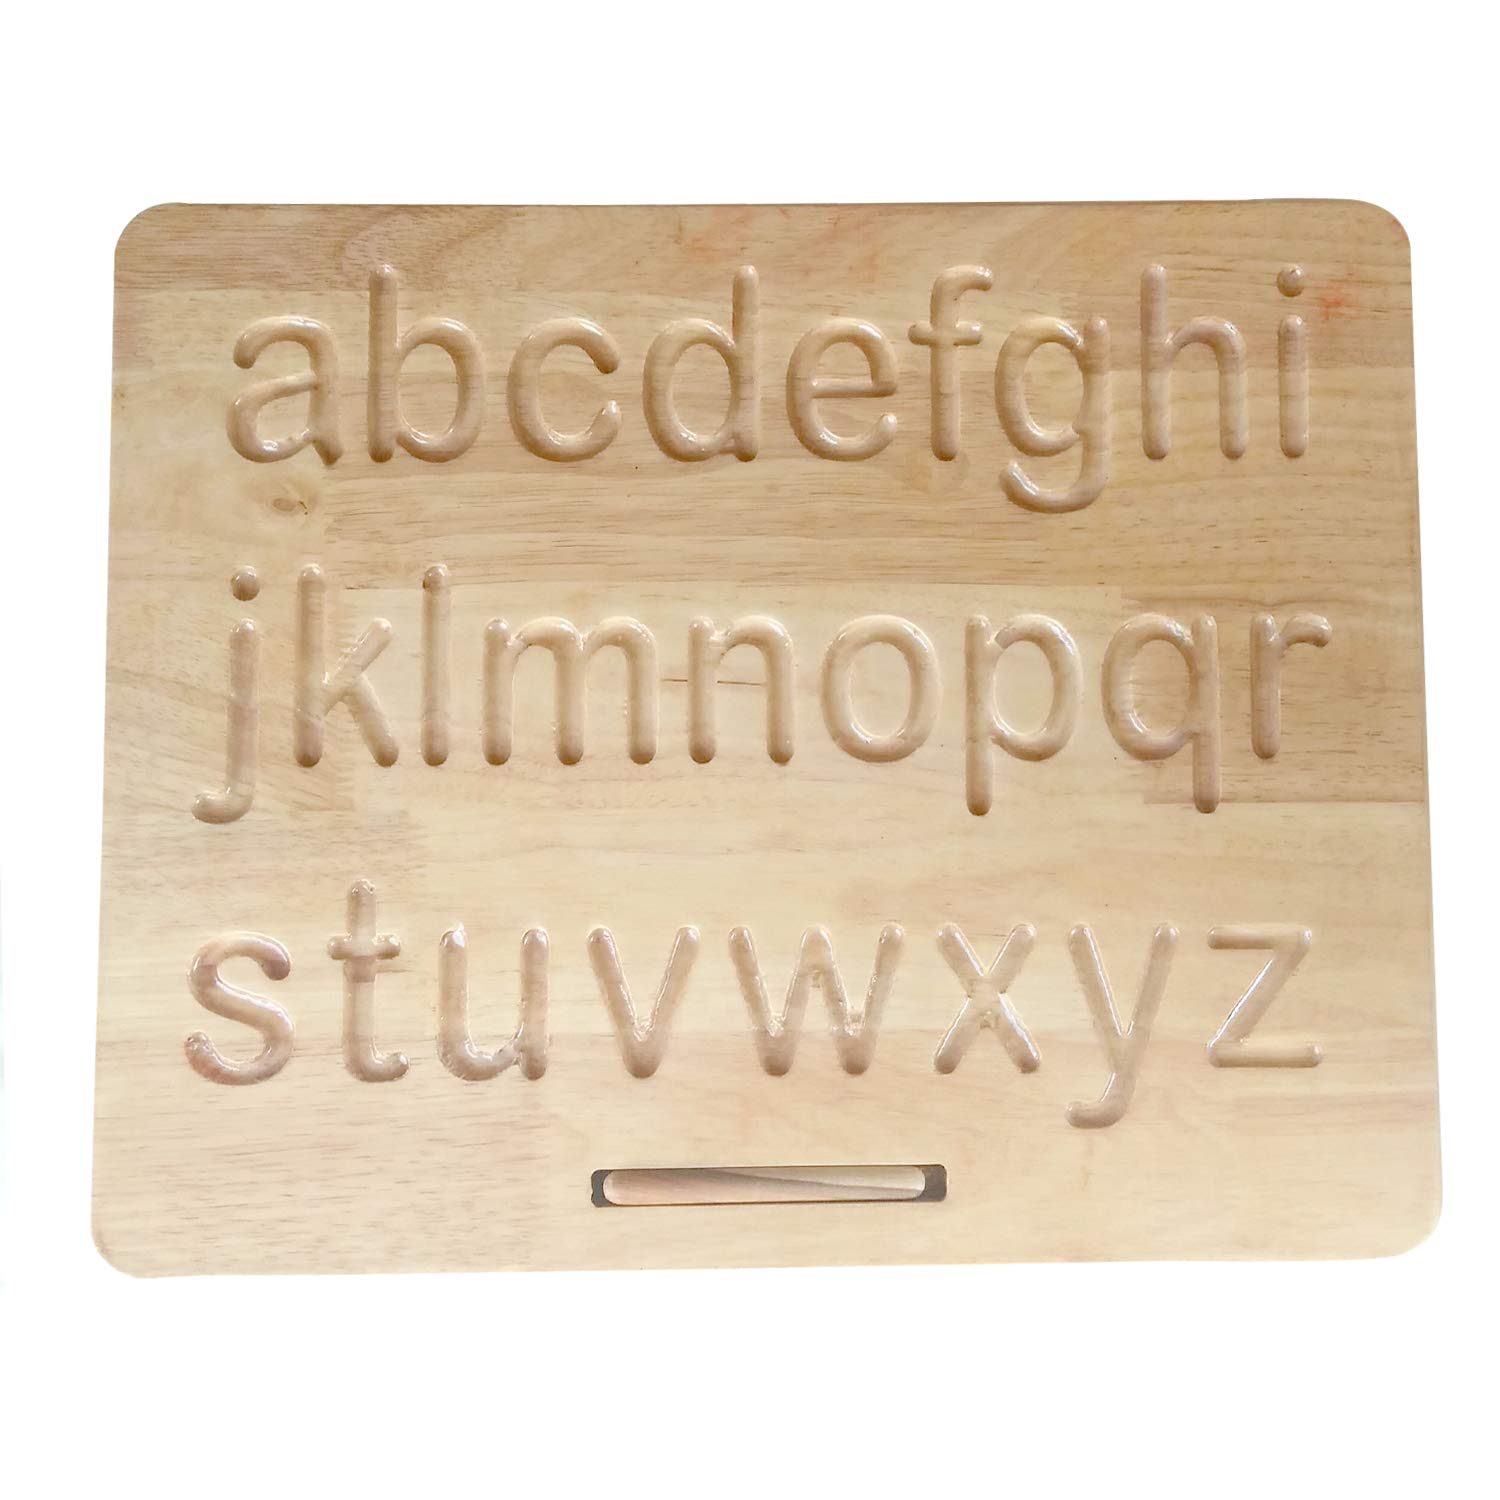 Printed Alphabet Wood Tracing Board Lowercase and/or Uppercase - Wooden Gifts - Baby Gifts - Grandparents Gifts - Class Room Gifts - Personalized Gifts